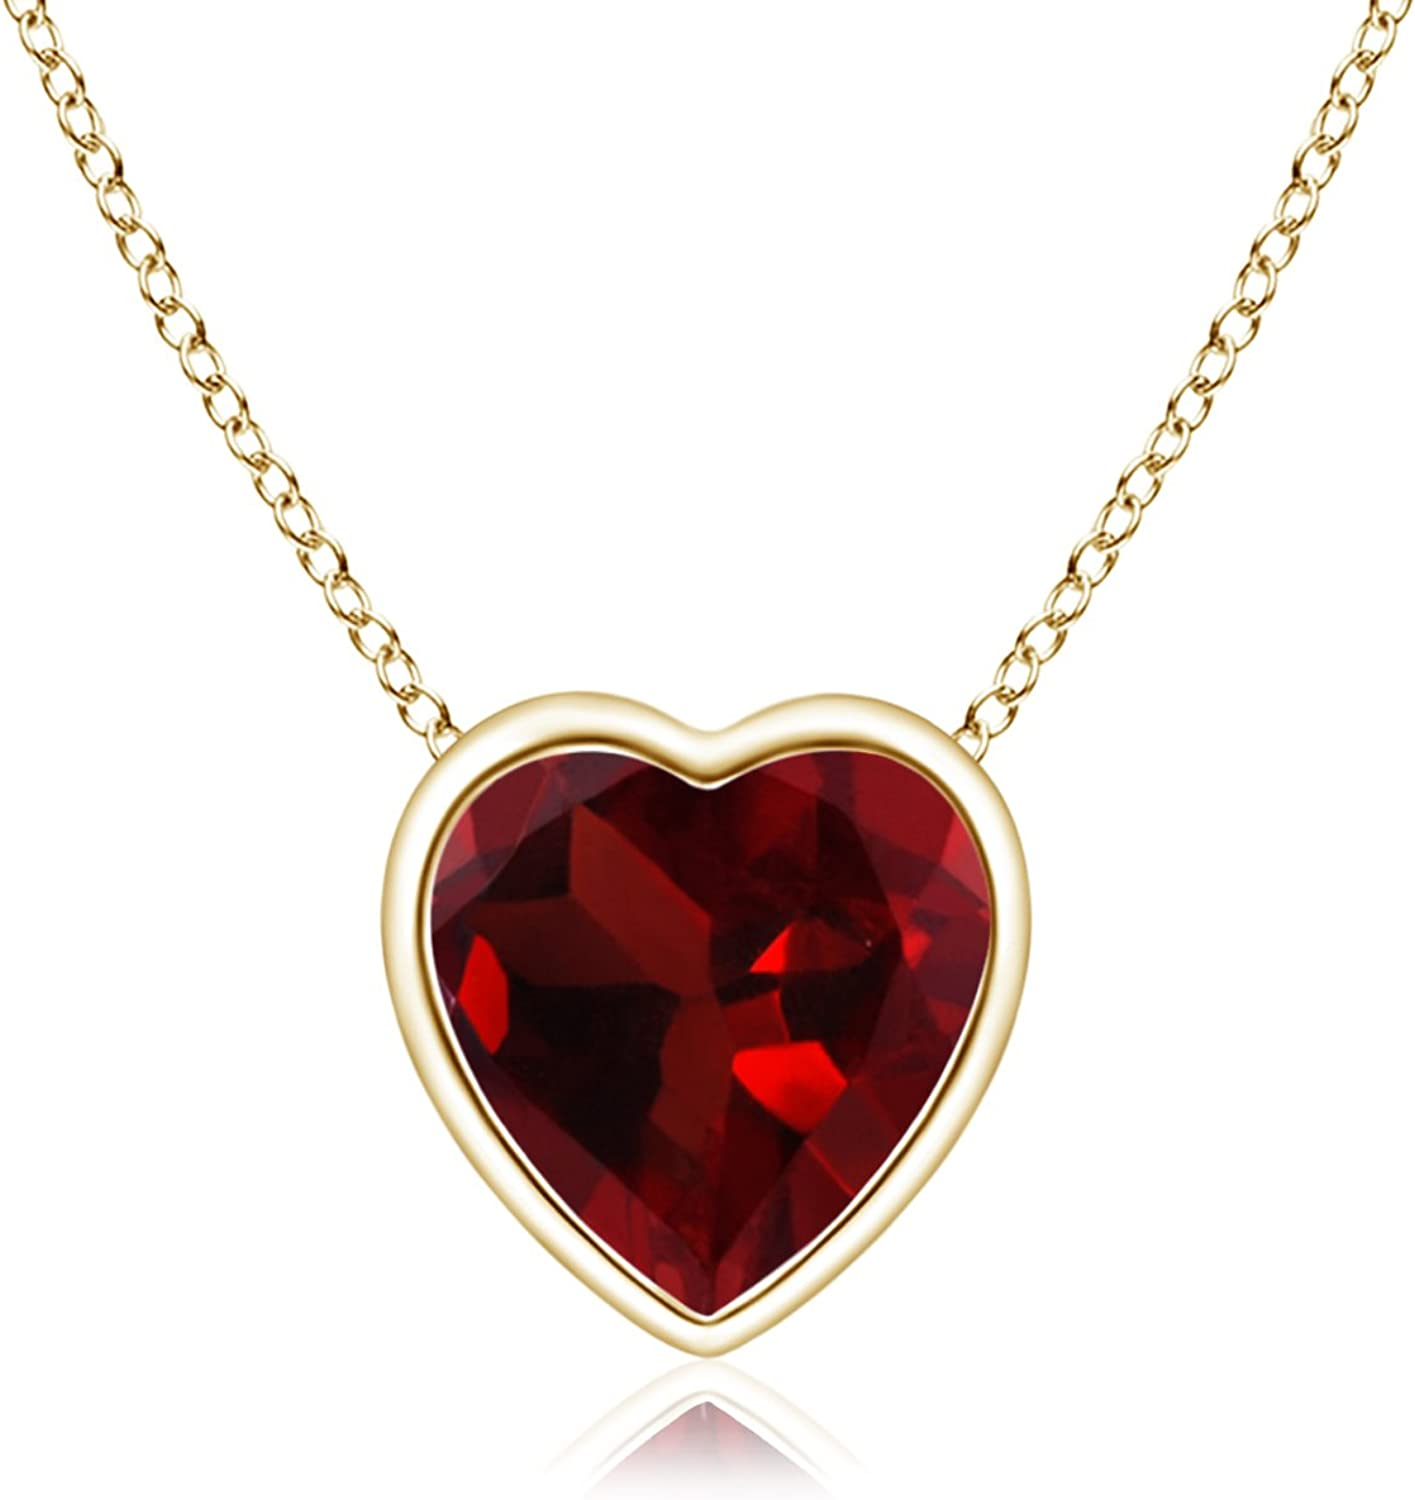 Details about  /January Birthstone Pendant Necklace Garnet in Yellow Gold Plated Silver or St